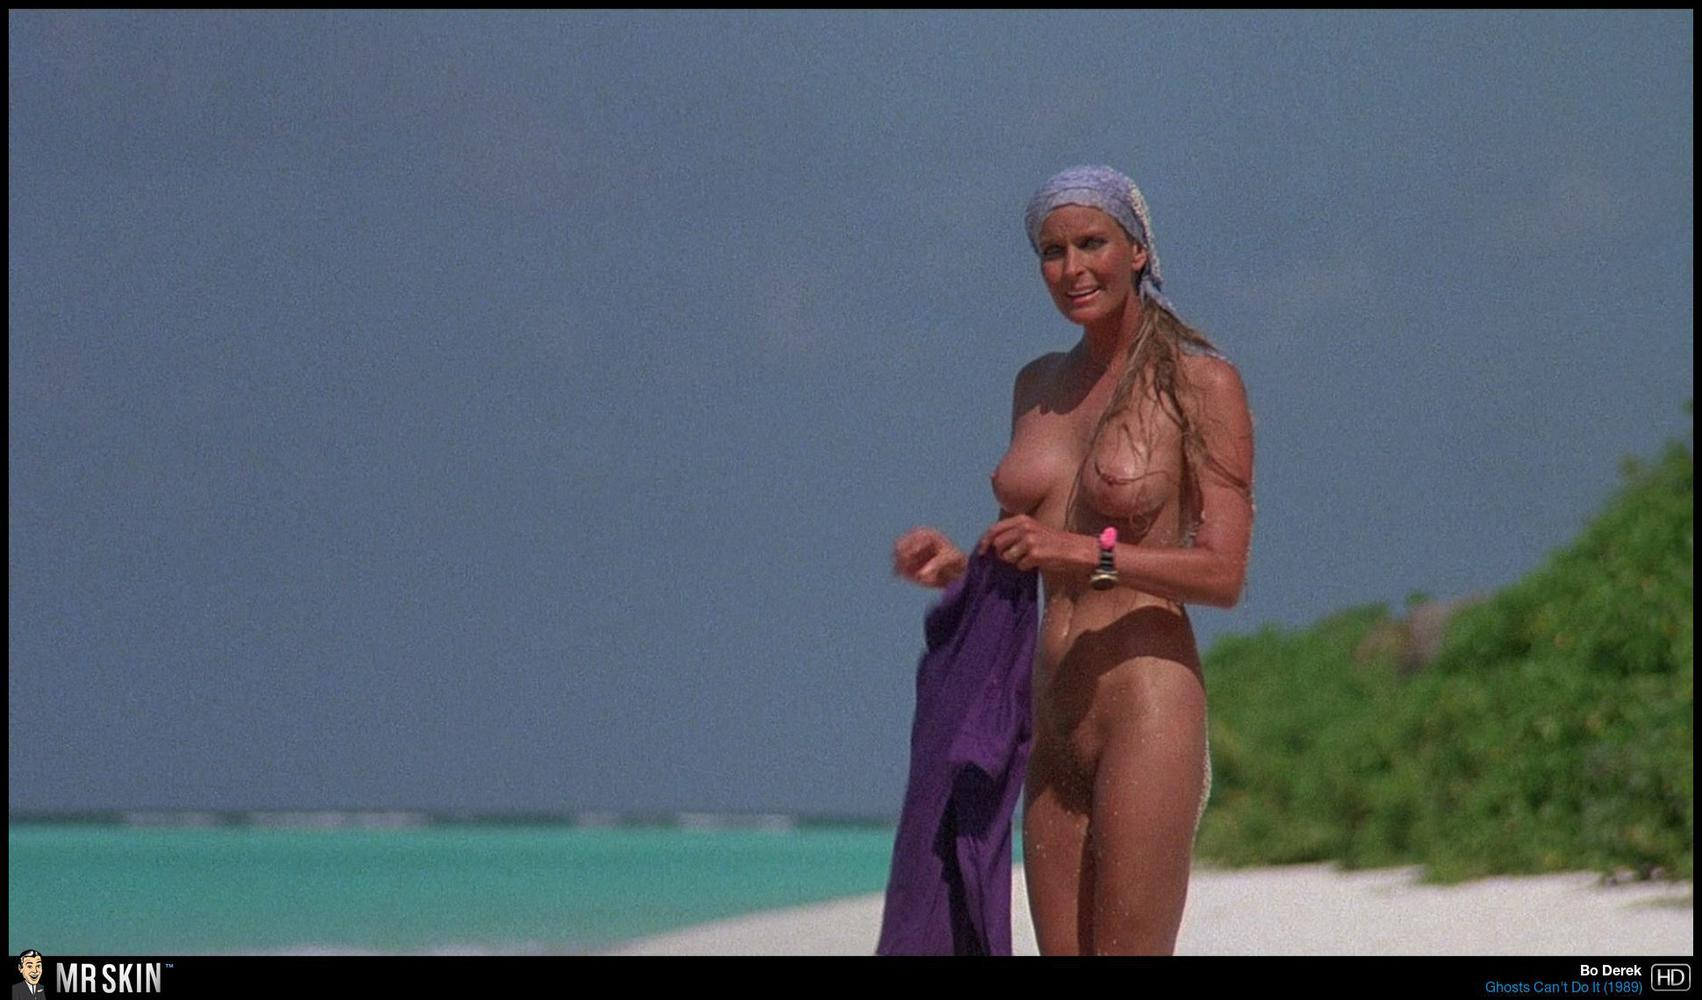 Nude photos of bo derek